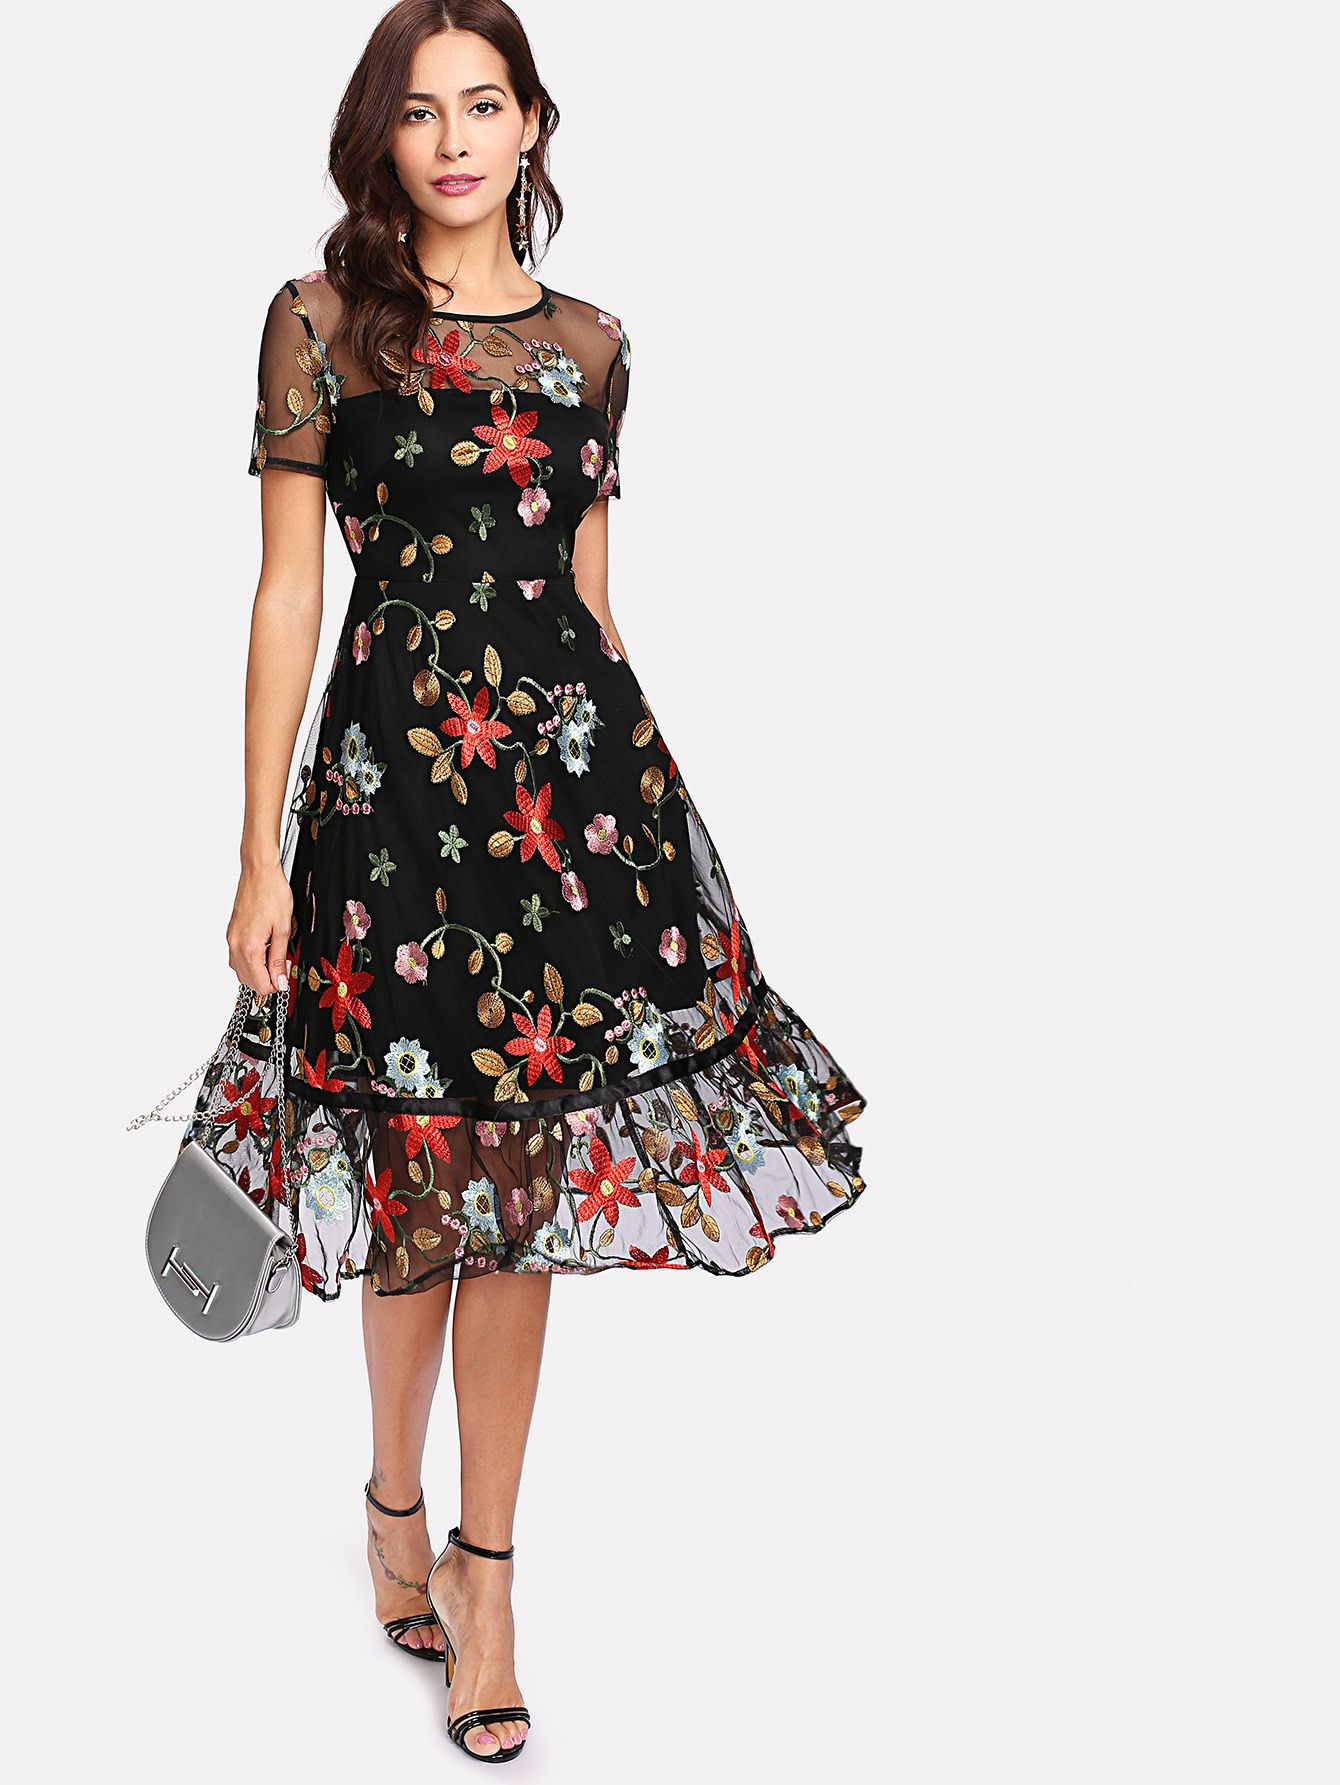 Botanical Embroidery Mesh Overlay Ruffle Hem Dress -Shein